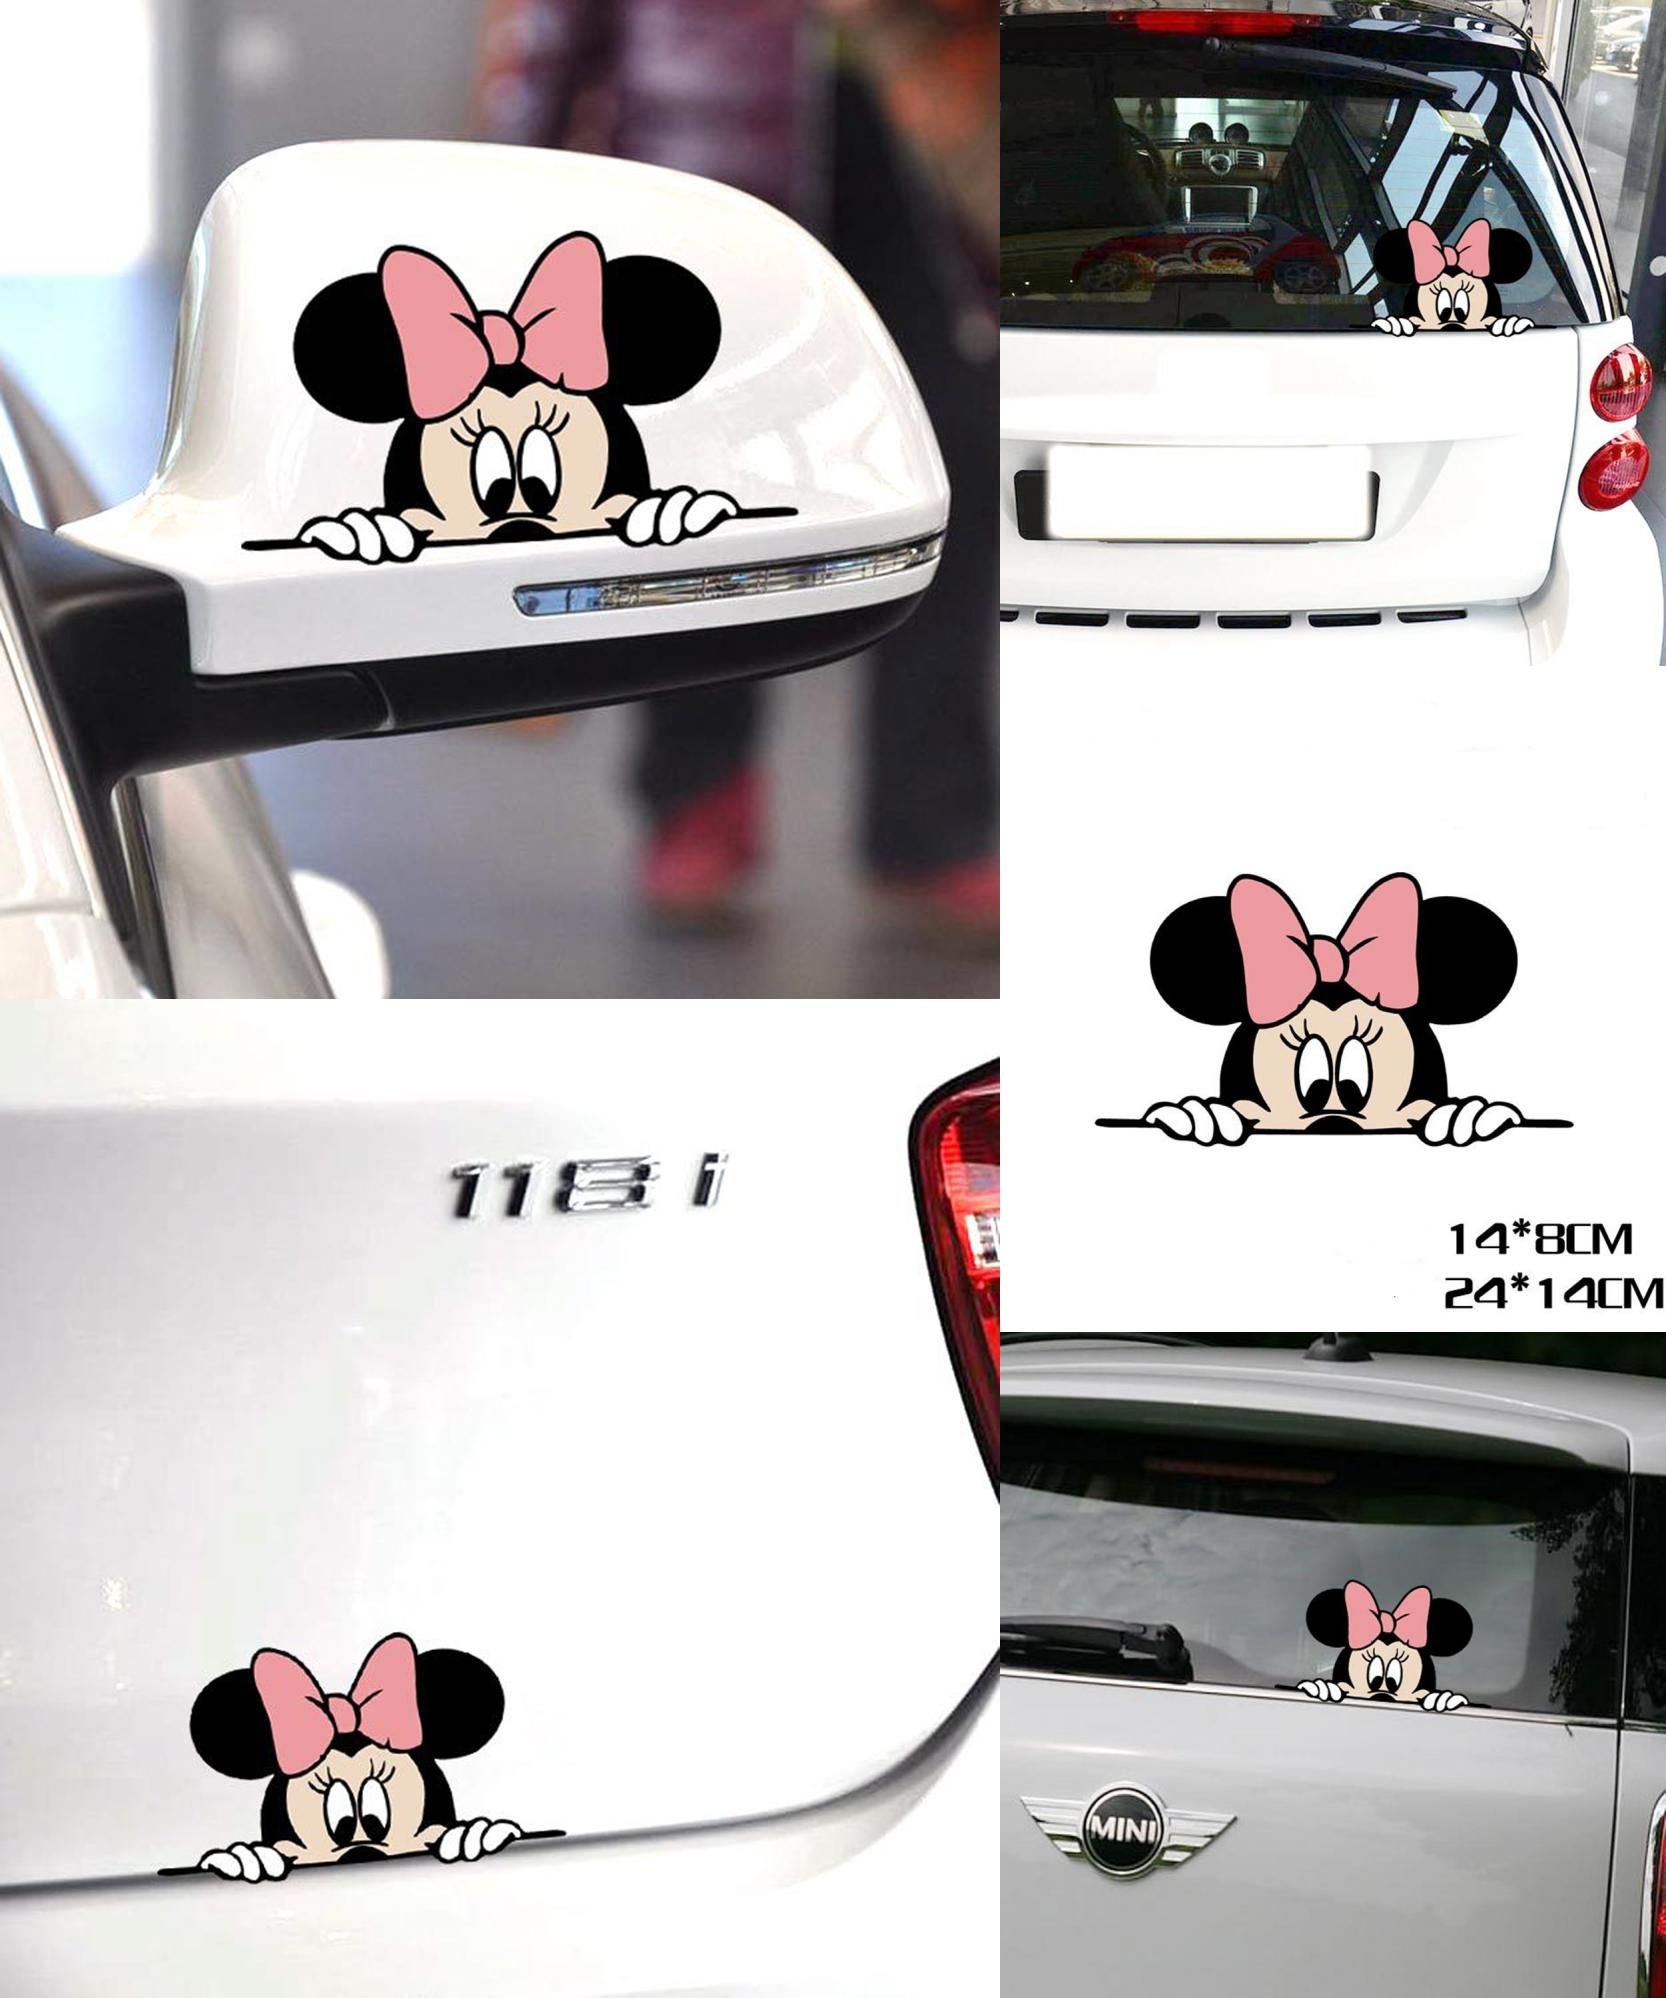 Visit To Buy Funny Car Sticker Cute Mickey Minnie Mouse Peeping Cover Scratches Cartoon Rearview Mirror Decal For Motorcy Car Stickers Funny Minnie Car Humor [ 1998 x 1666 Pixel ]